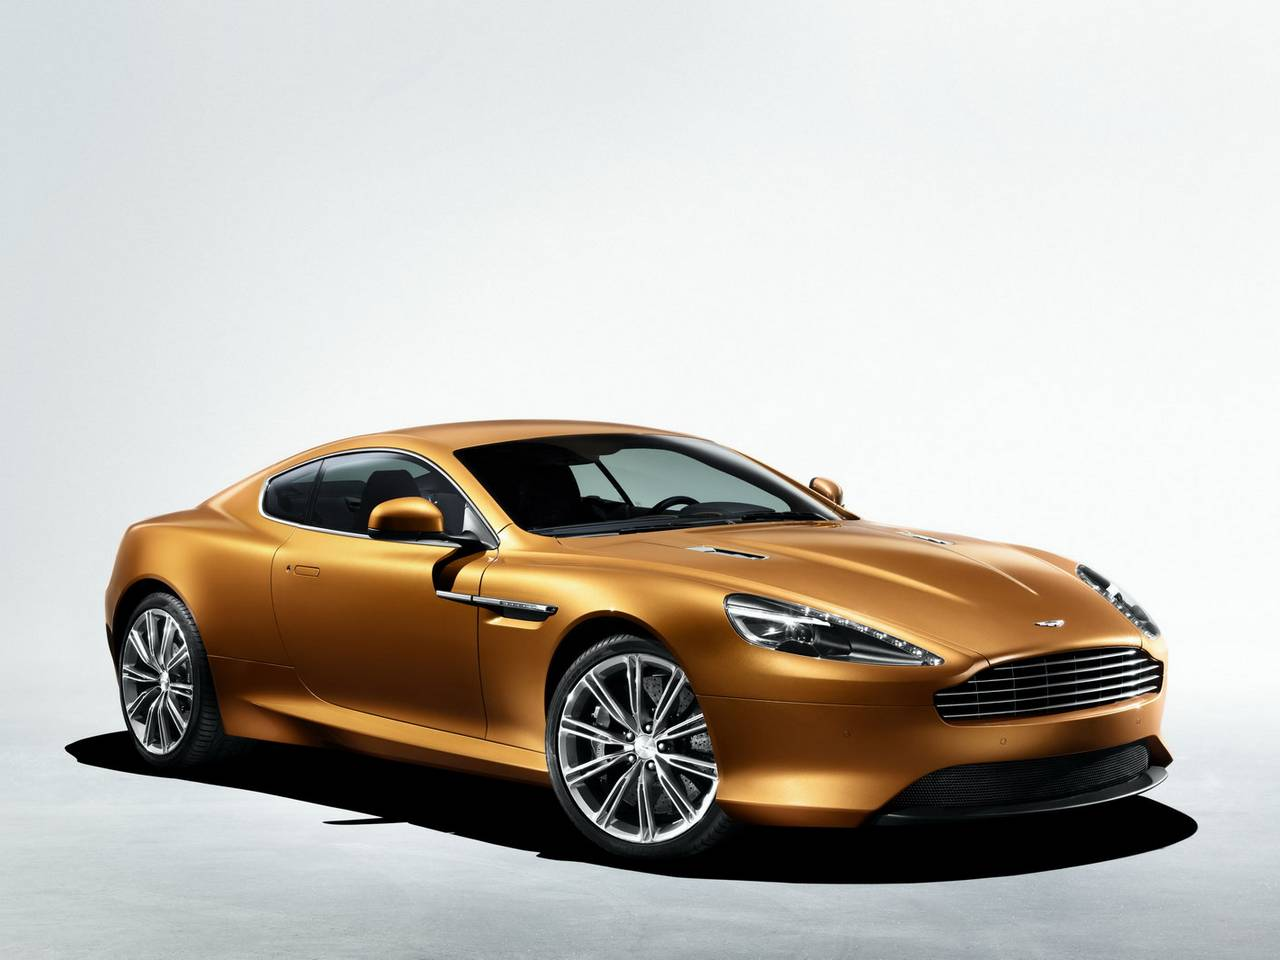 Aston Martin Virage 01